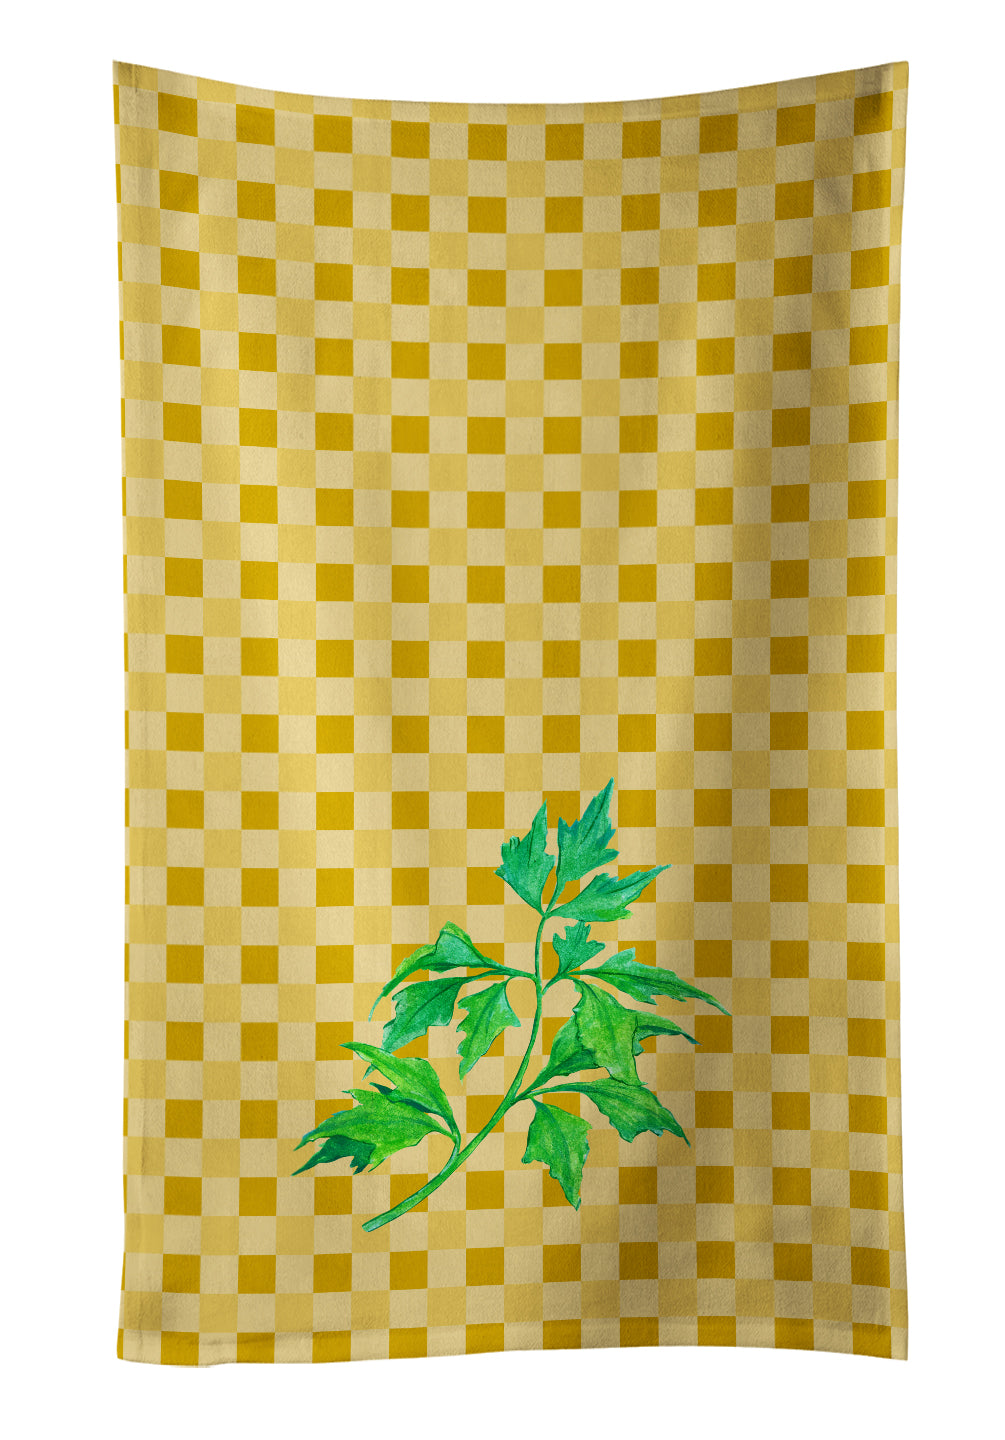 Celery on Basketweave Kitchen Towel BB7192KTWL by Caroline's Treasures